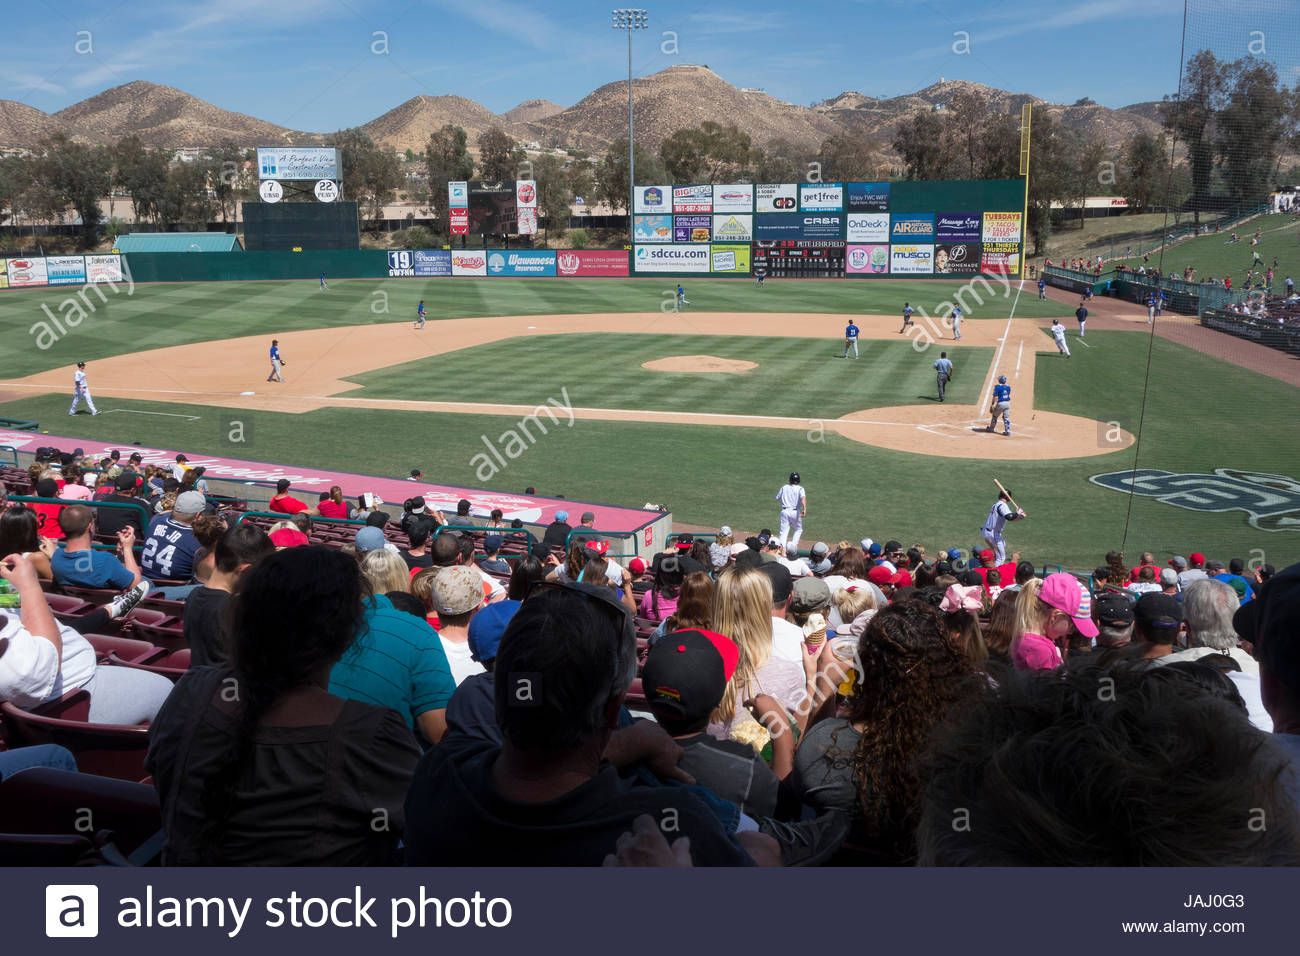 Class A California League baseball, Lake Elsinore Storm, 10, vs Rancho Cucamonga Quakes, 2, at Diamond Stadium. - Stock Image